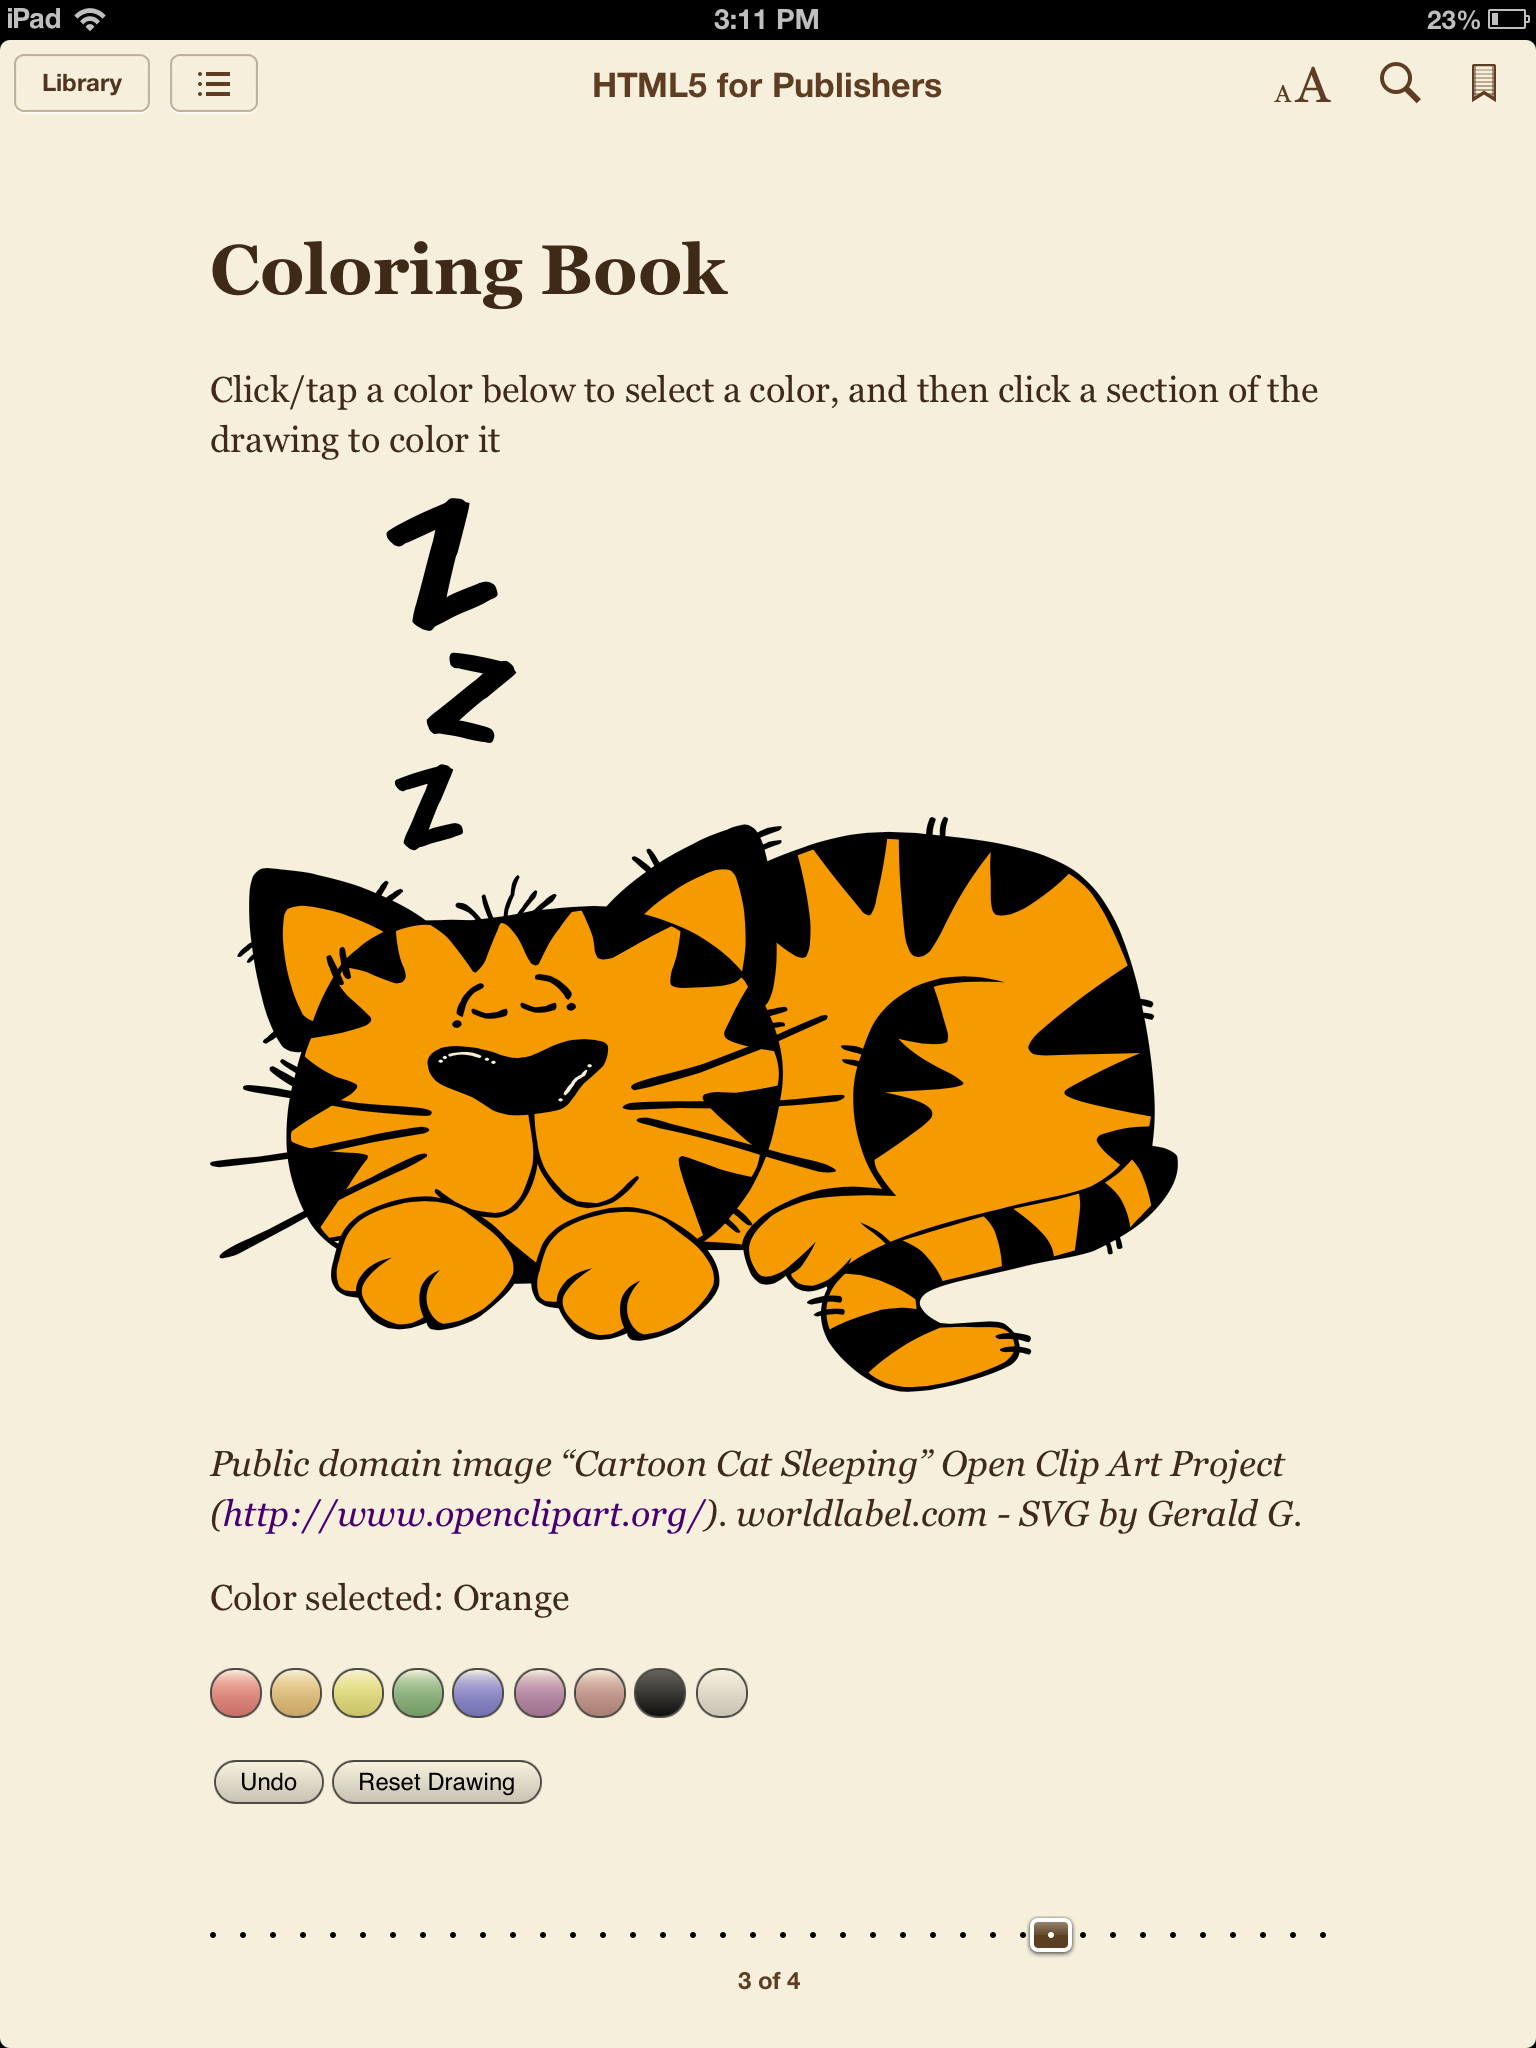 Coloring book html5 - Svg Coloring Book Completed Sleepy Cat Image He S Masquerading As